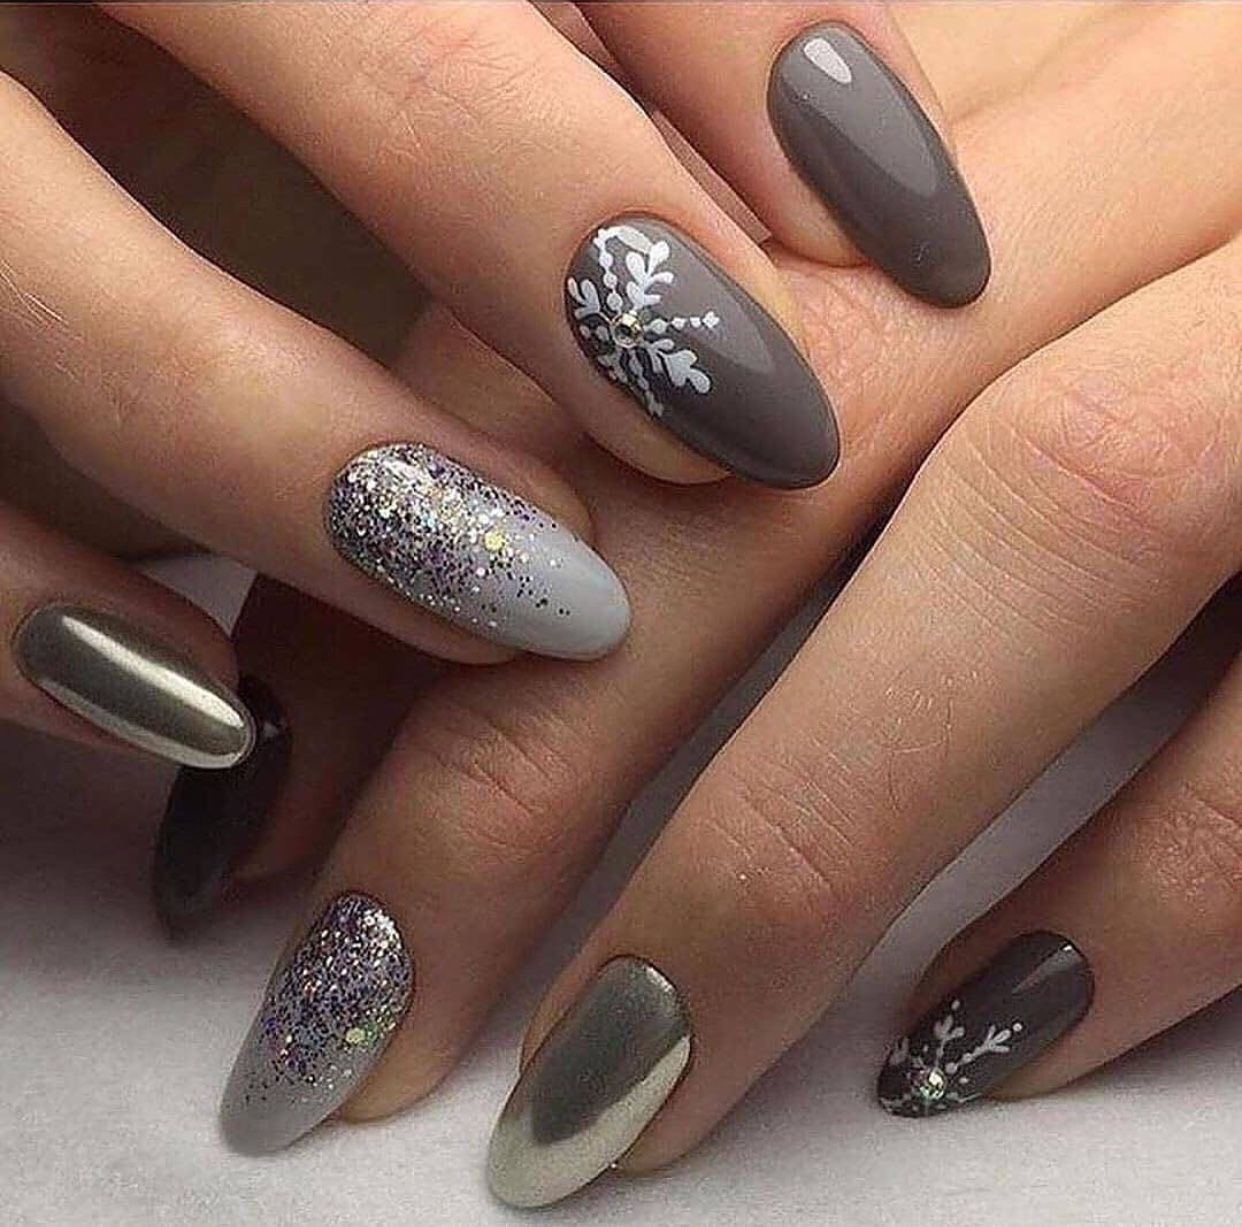 nail tips design Ring Finger nailtipsapplication in 2020